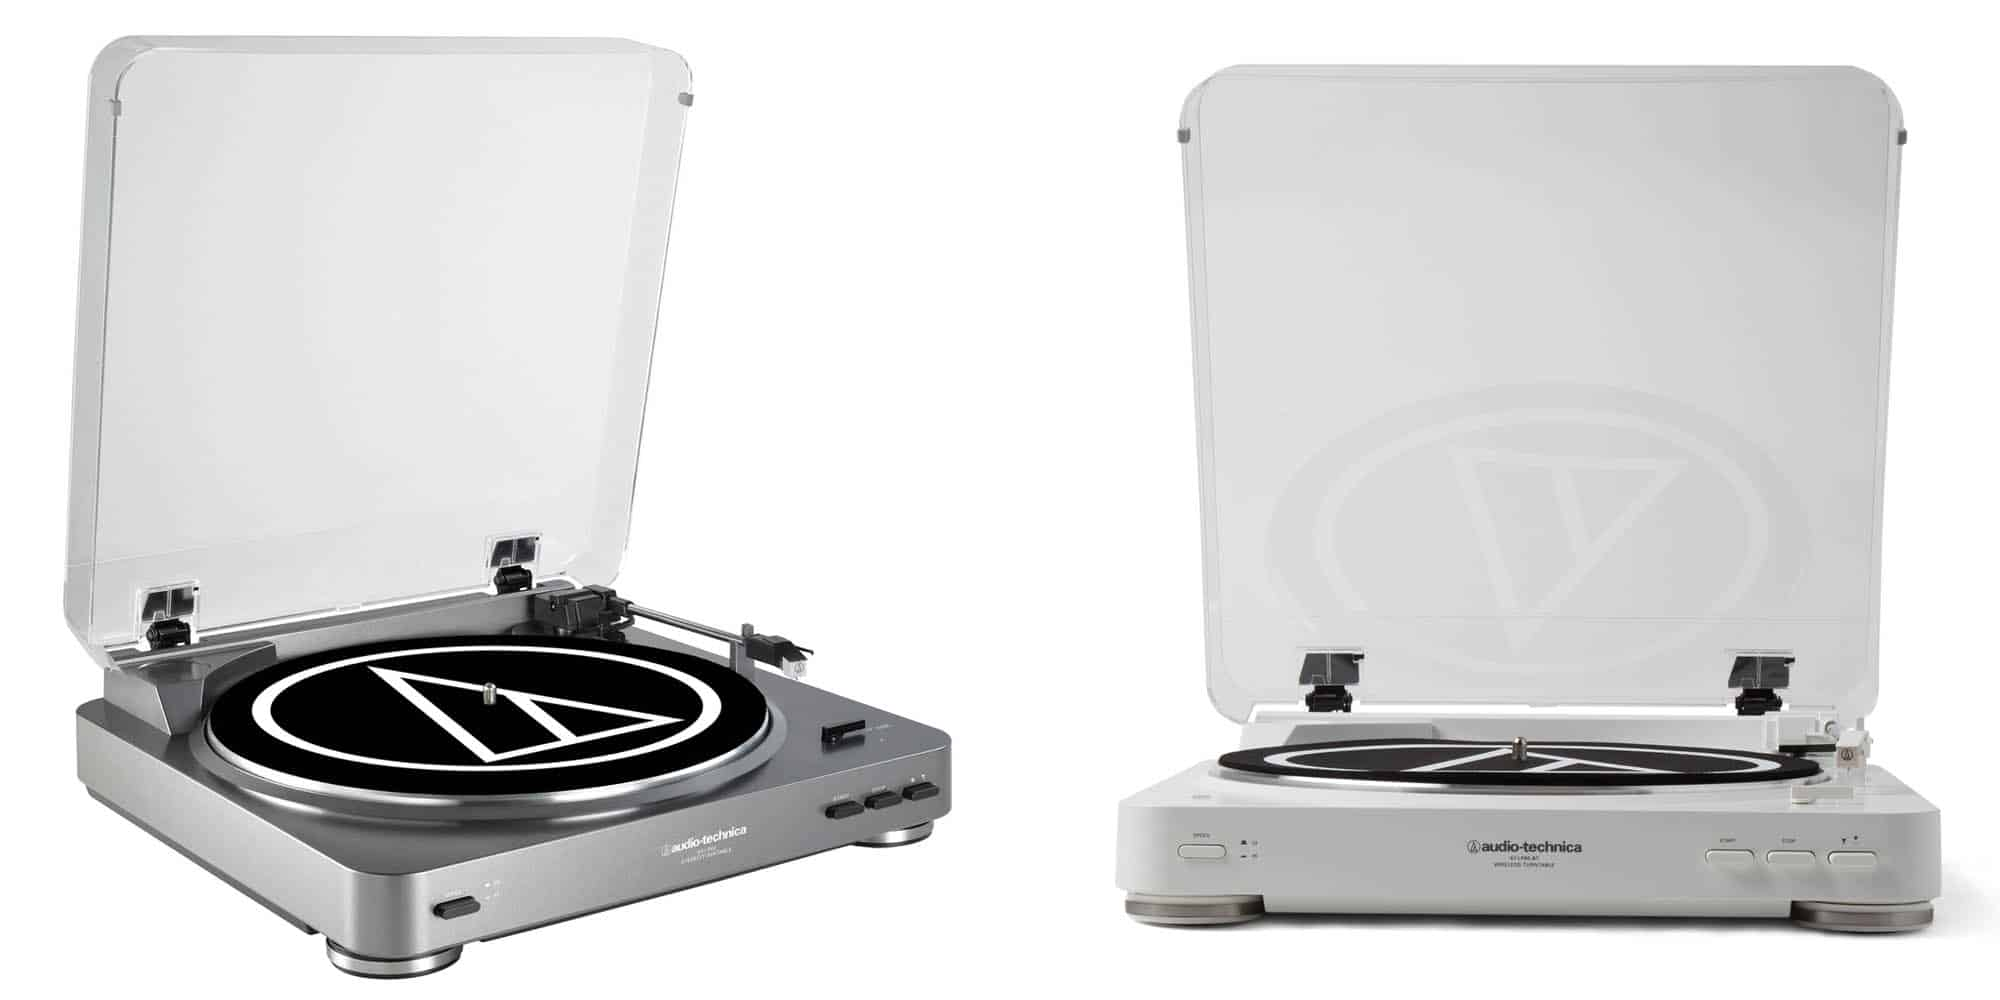 featured image for audio technica at-lp60 review